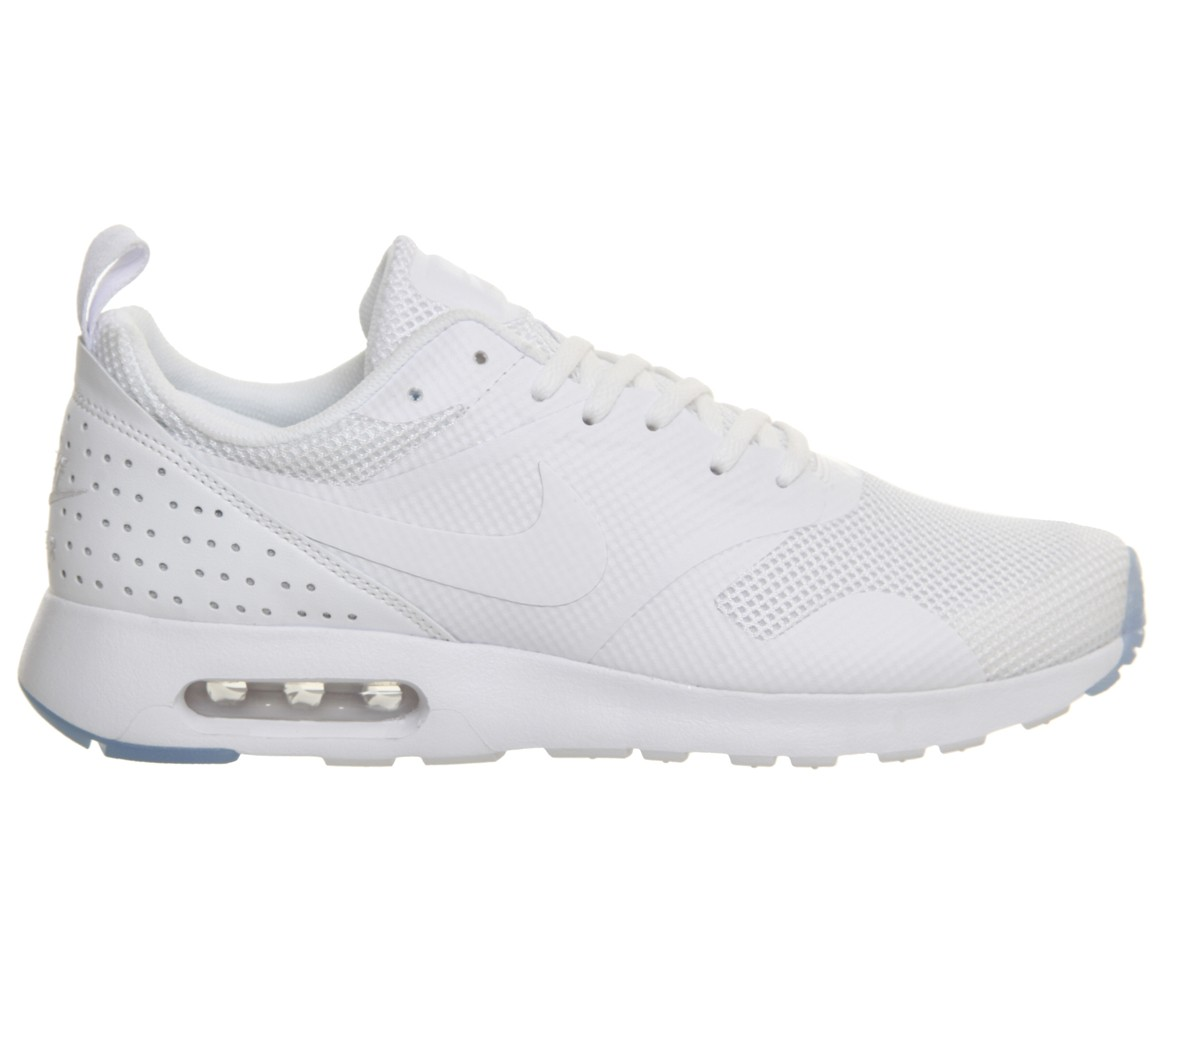 Nike Air Max Tavas SE Homme Sneakers Blanche Mono 718895-111